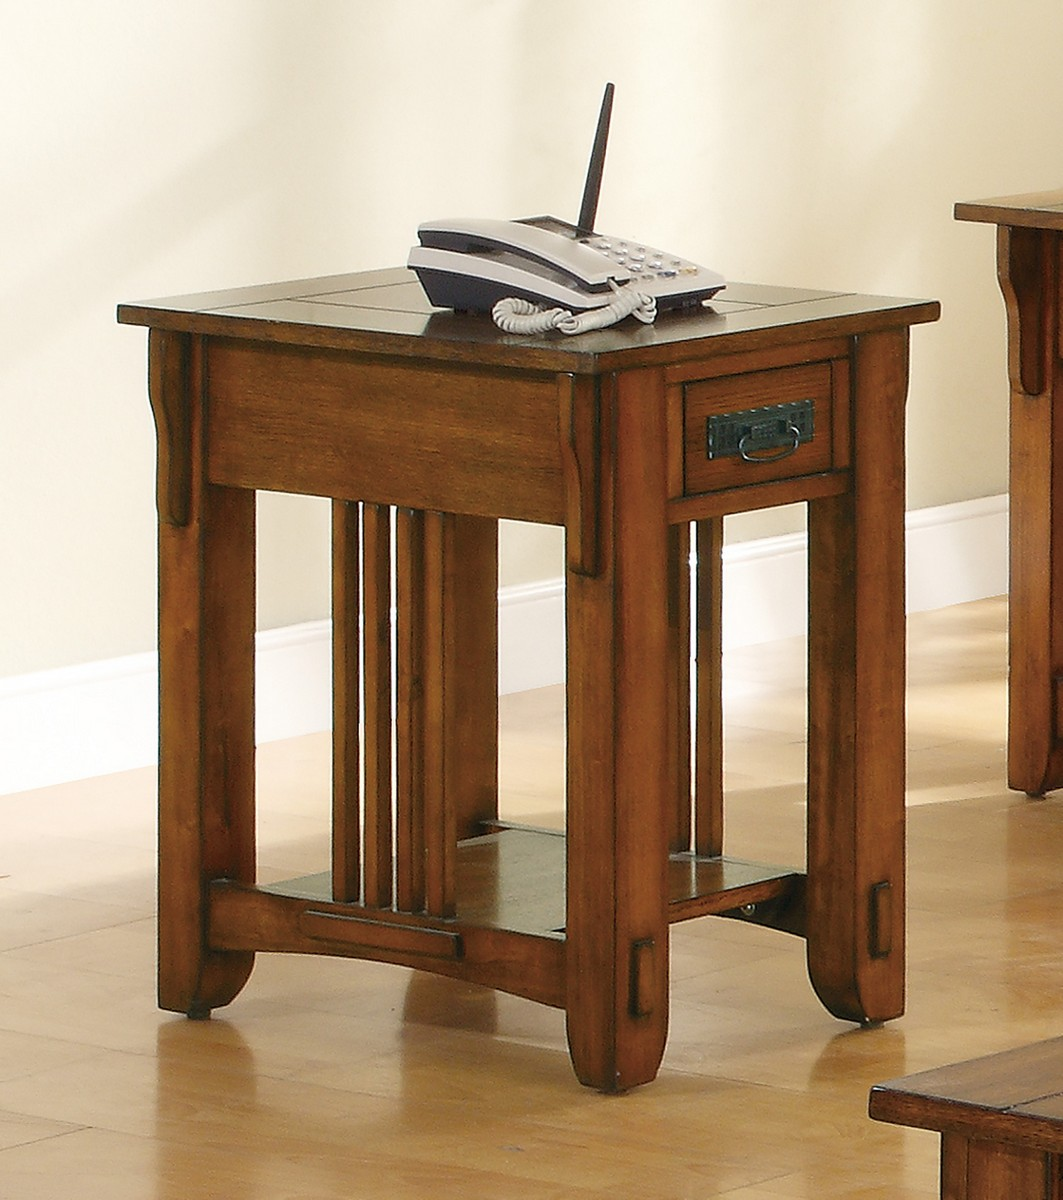 Coaster 702006 Chairside Table - Warm Brown